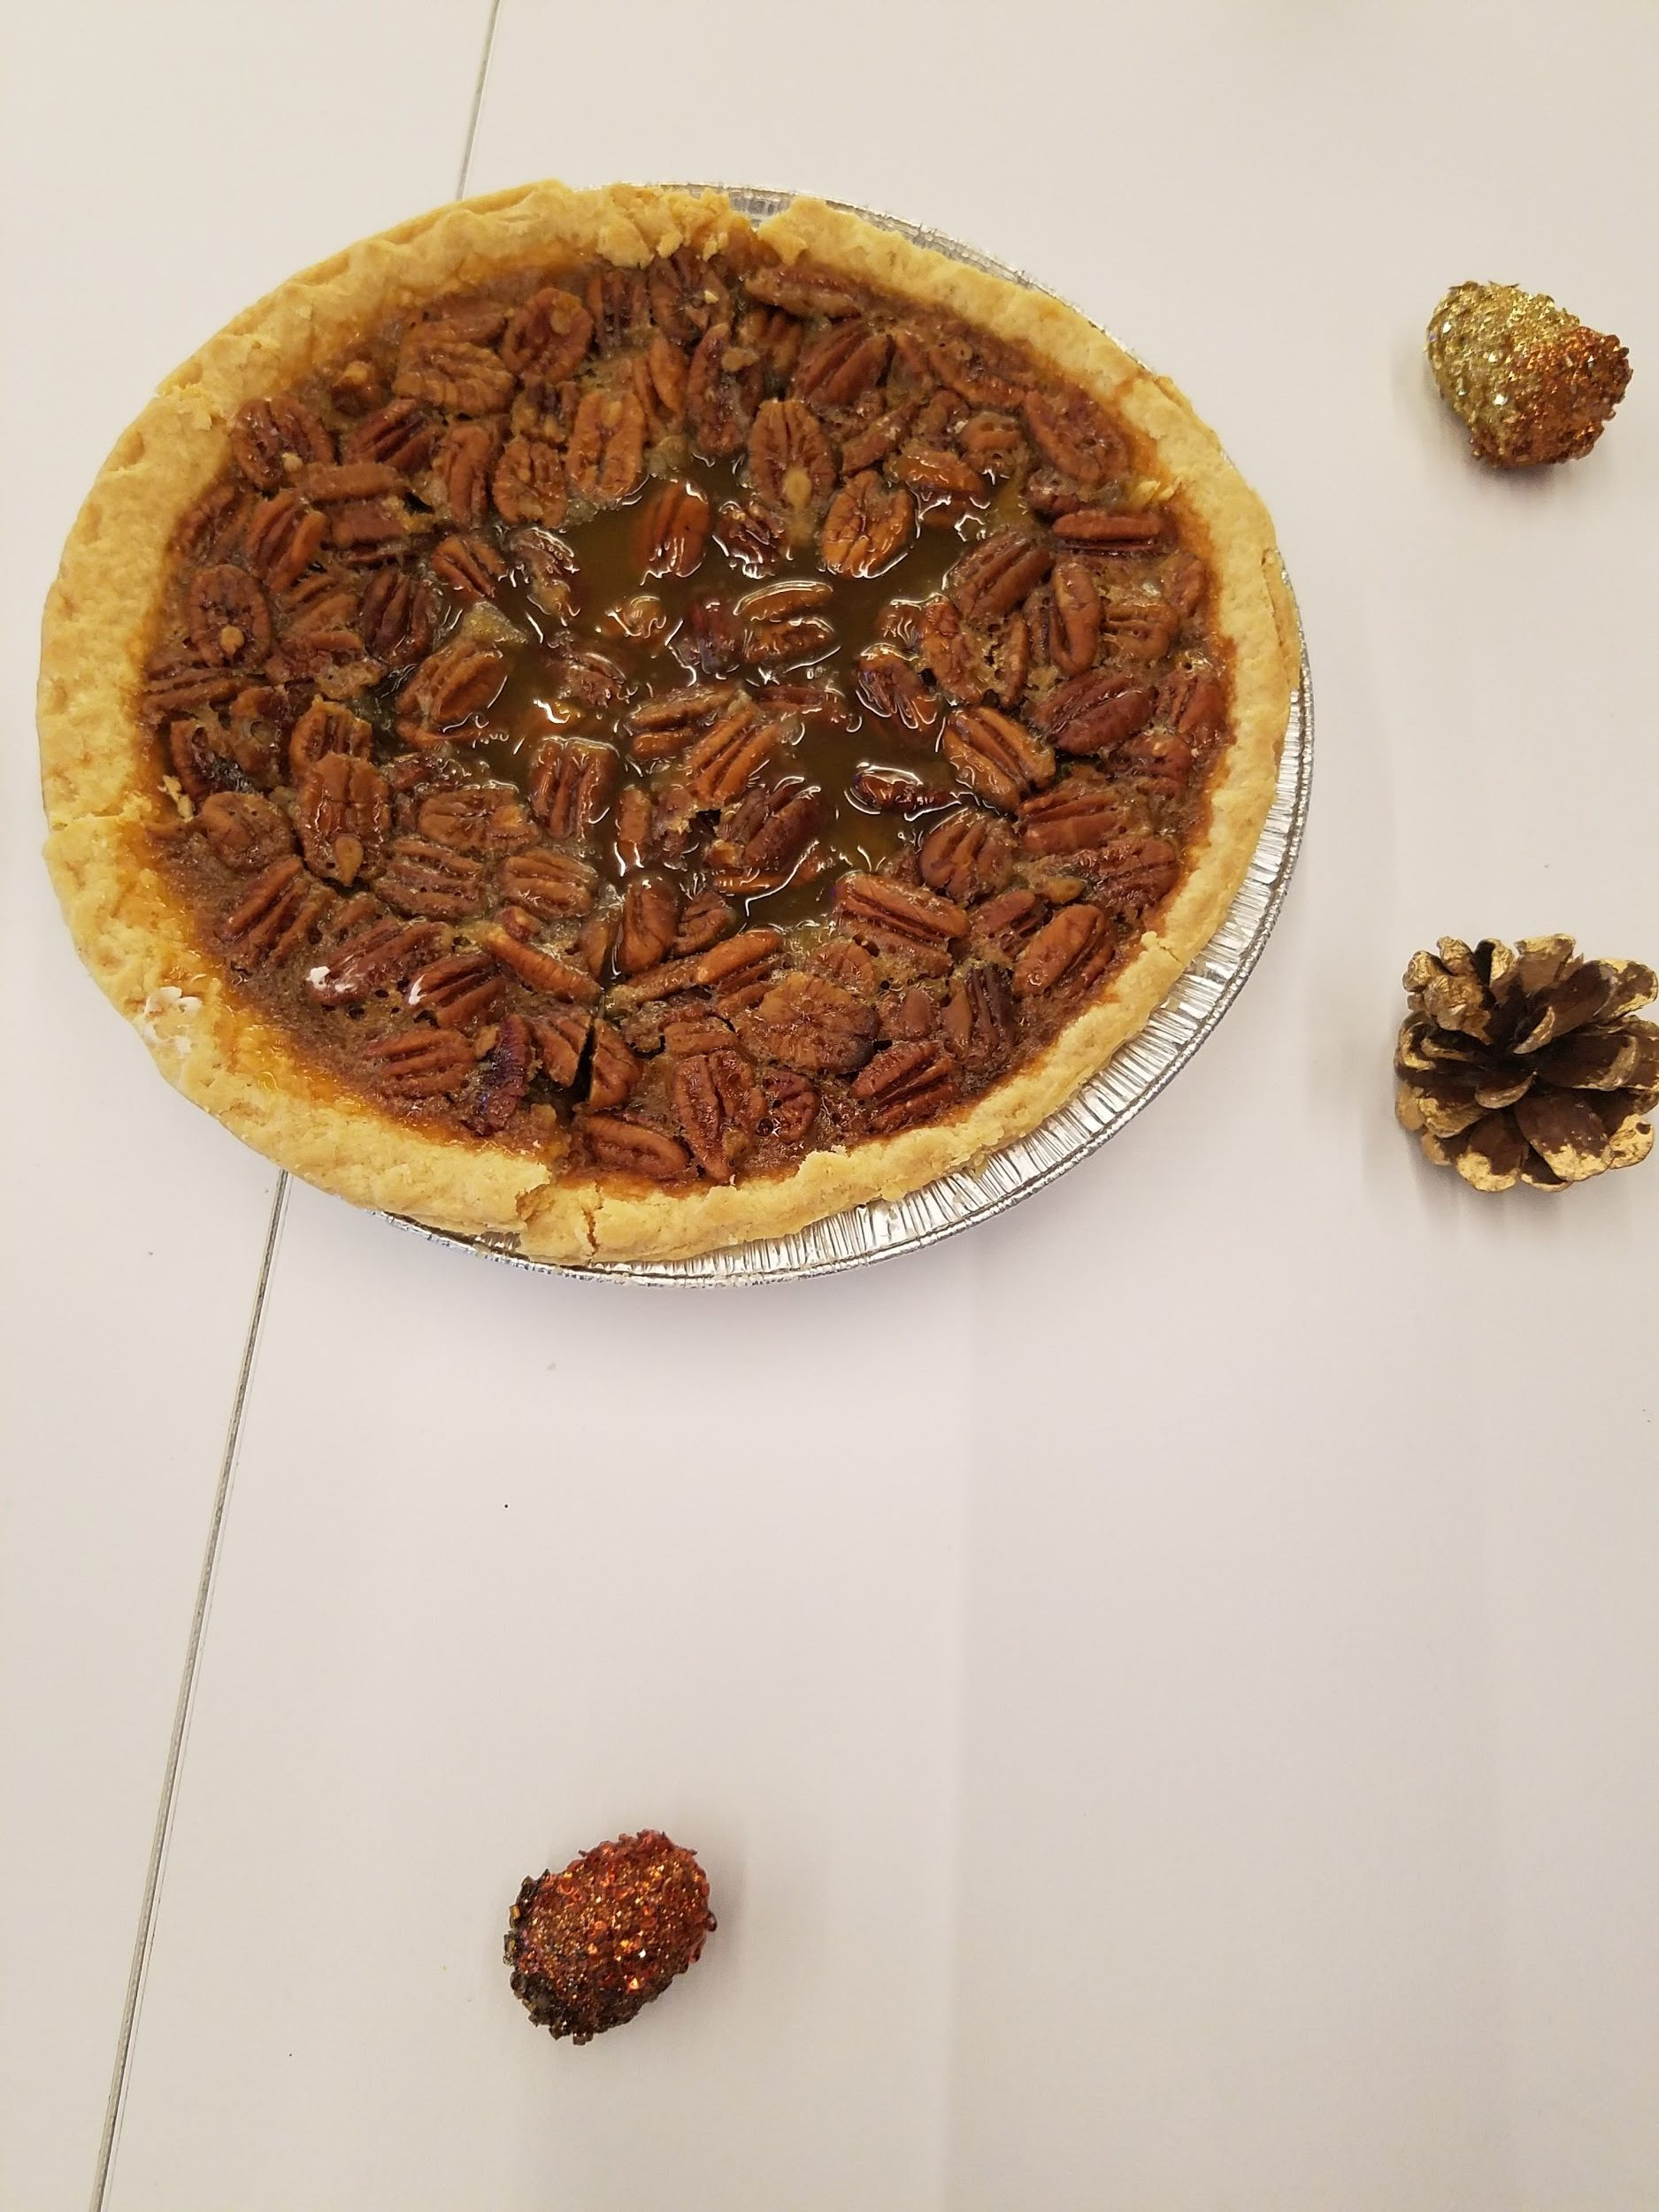 Allreciped Pecan Pie